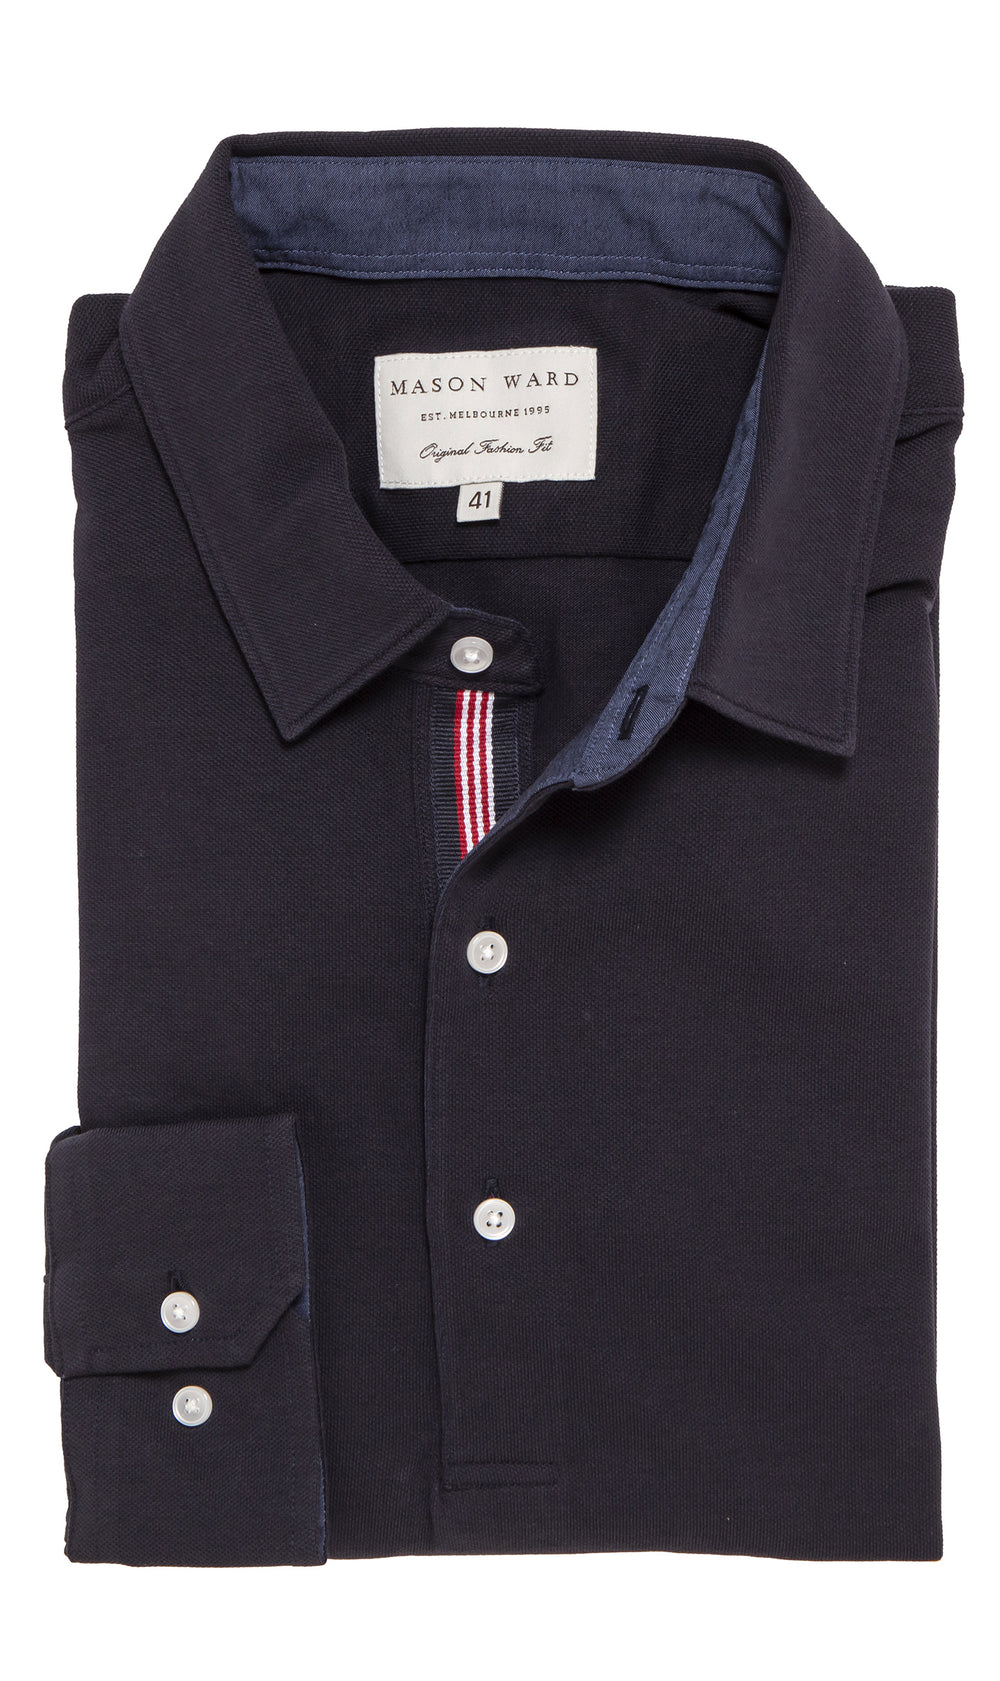 Mason Ward Oskar Knit Fashion Fit/ Regular Cuff Shirt Navy